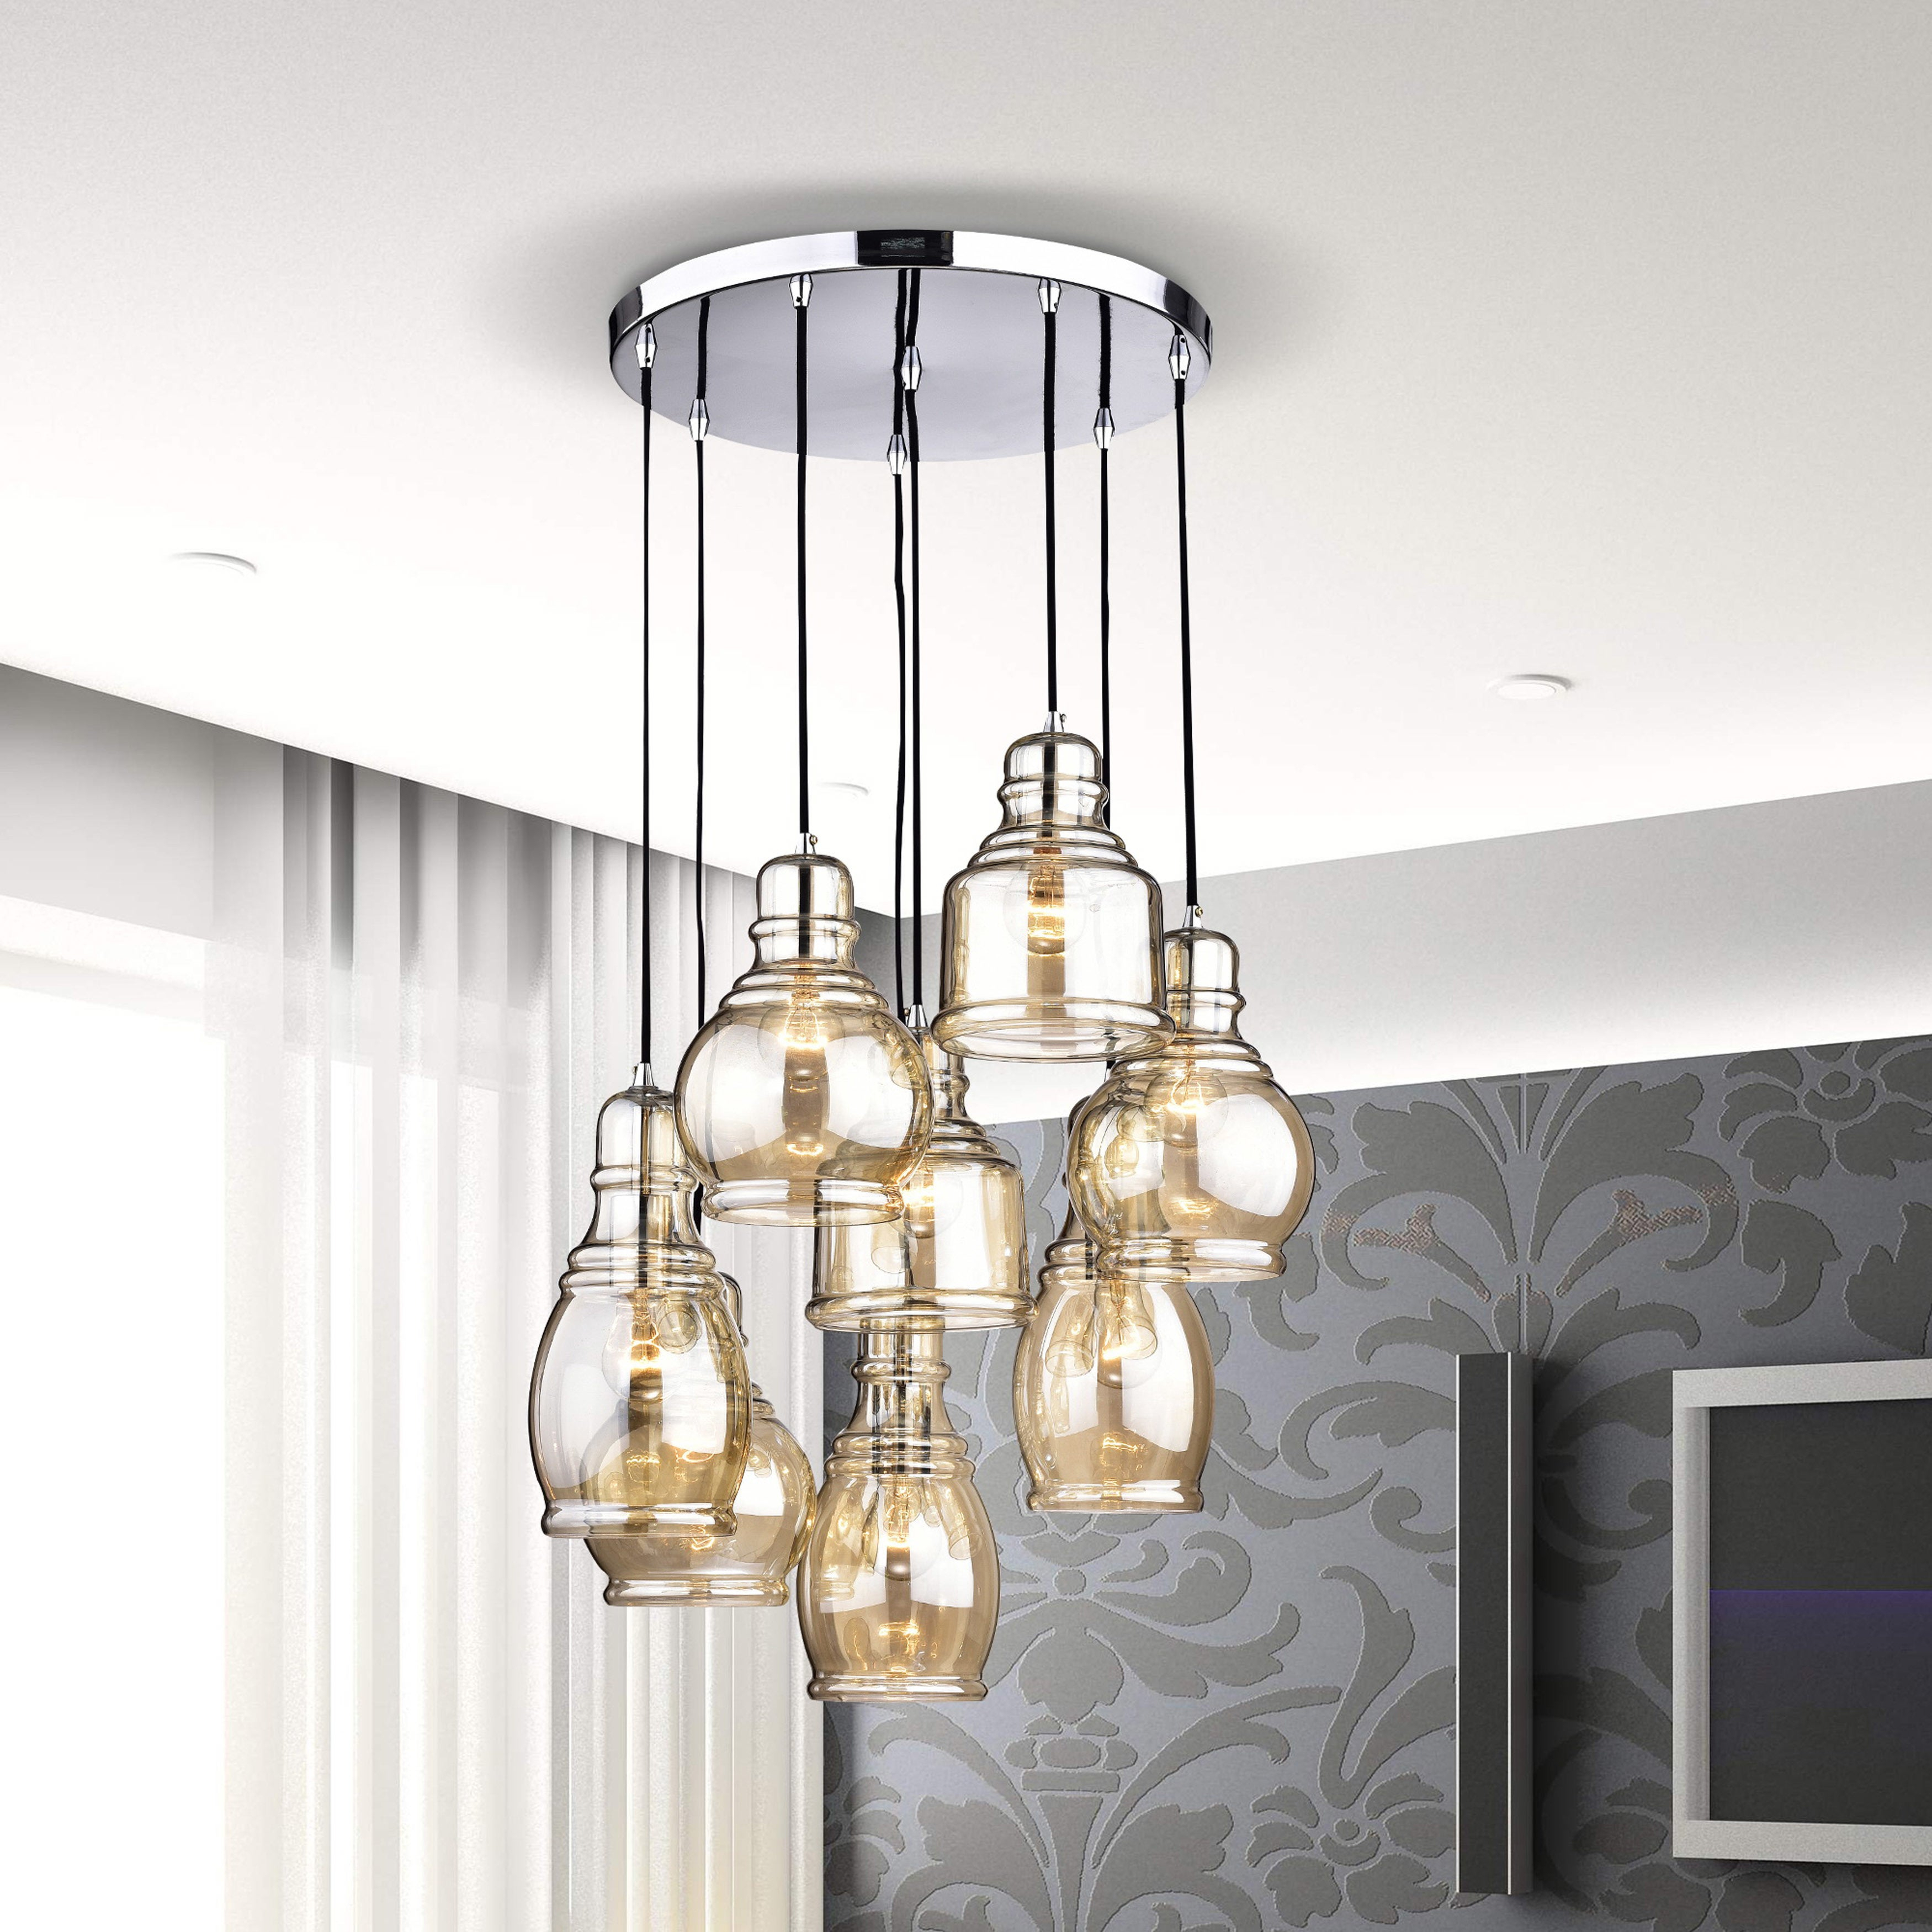 Mariana 8 Light Cognac Glass Cluster Pendant Chandelier With Chrome Finish And Round Base Throughout Pruett Cognac Glass 8 Light Cluster Pendants (View 10 of 30)